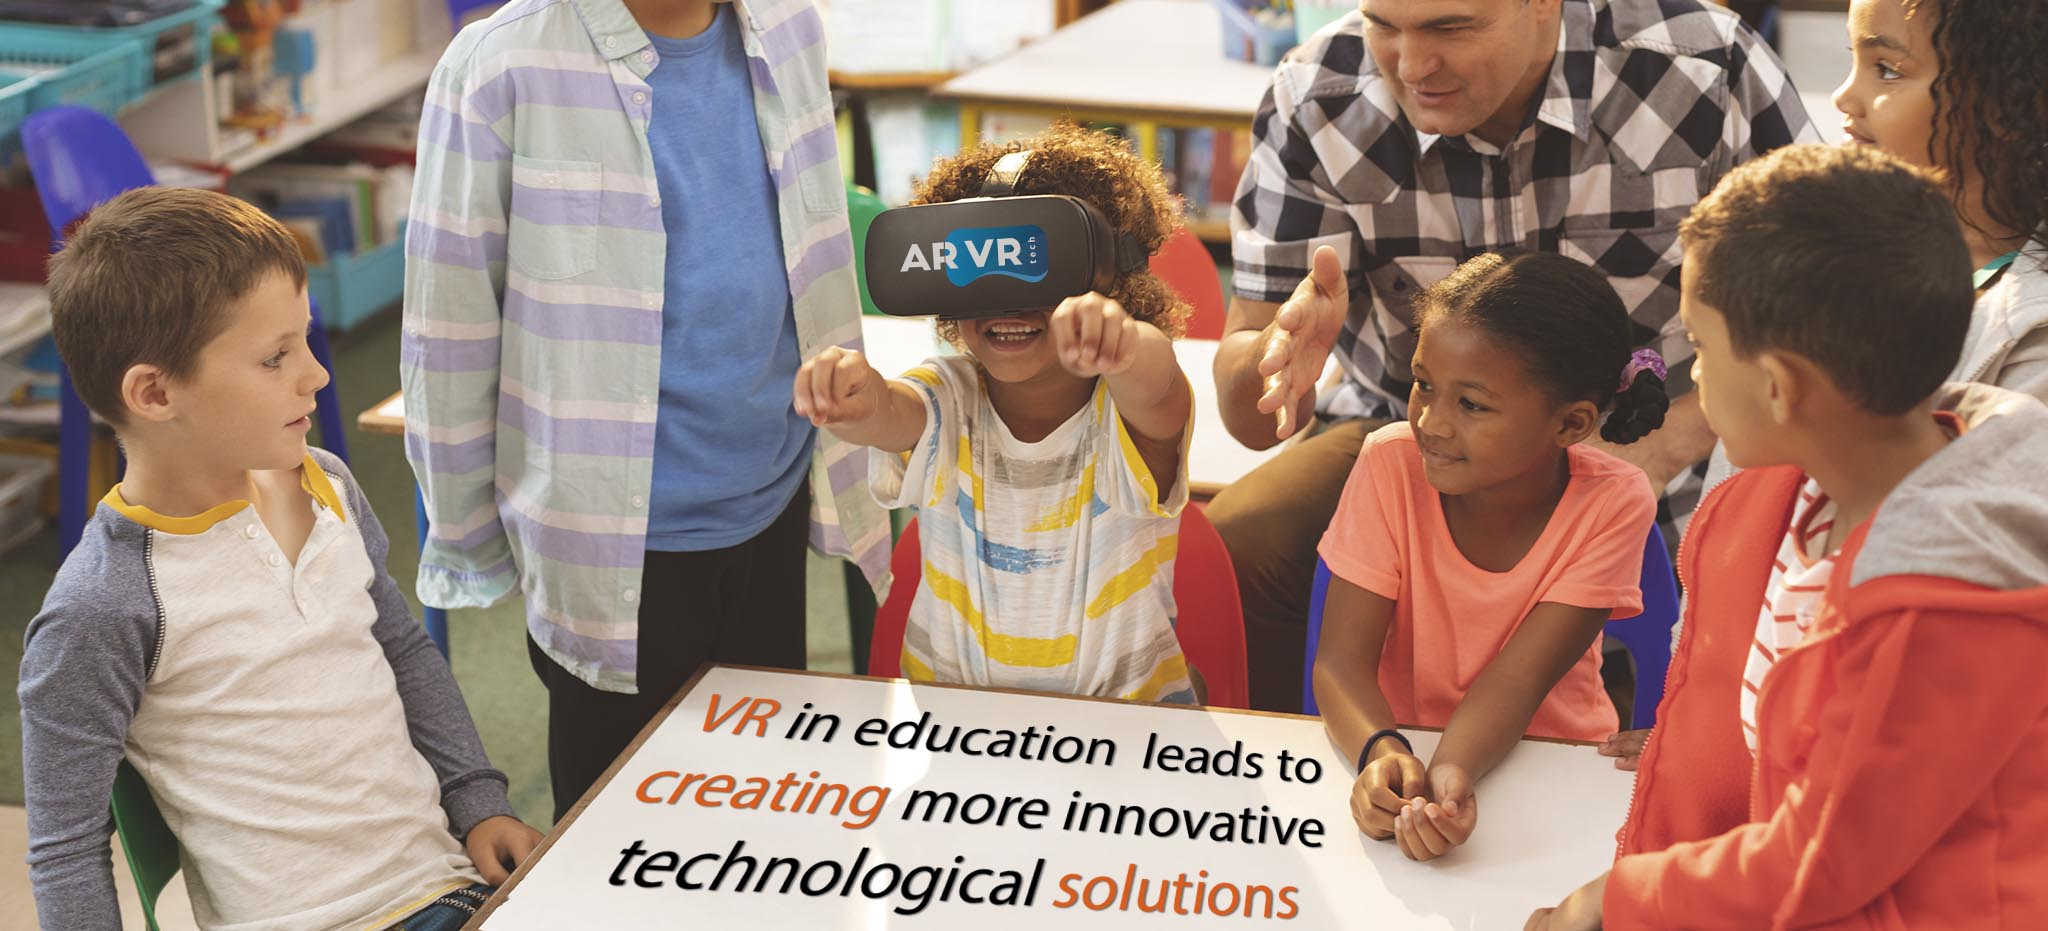 VR Education Quote